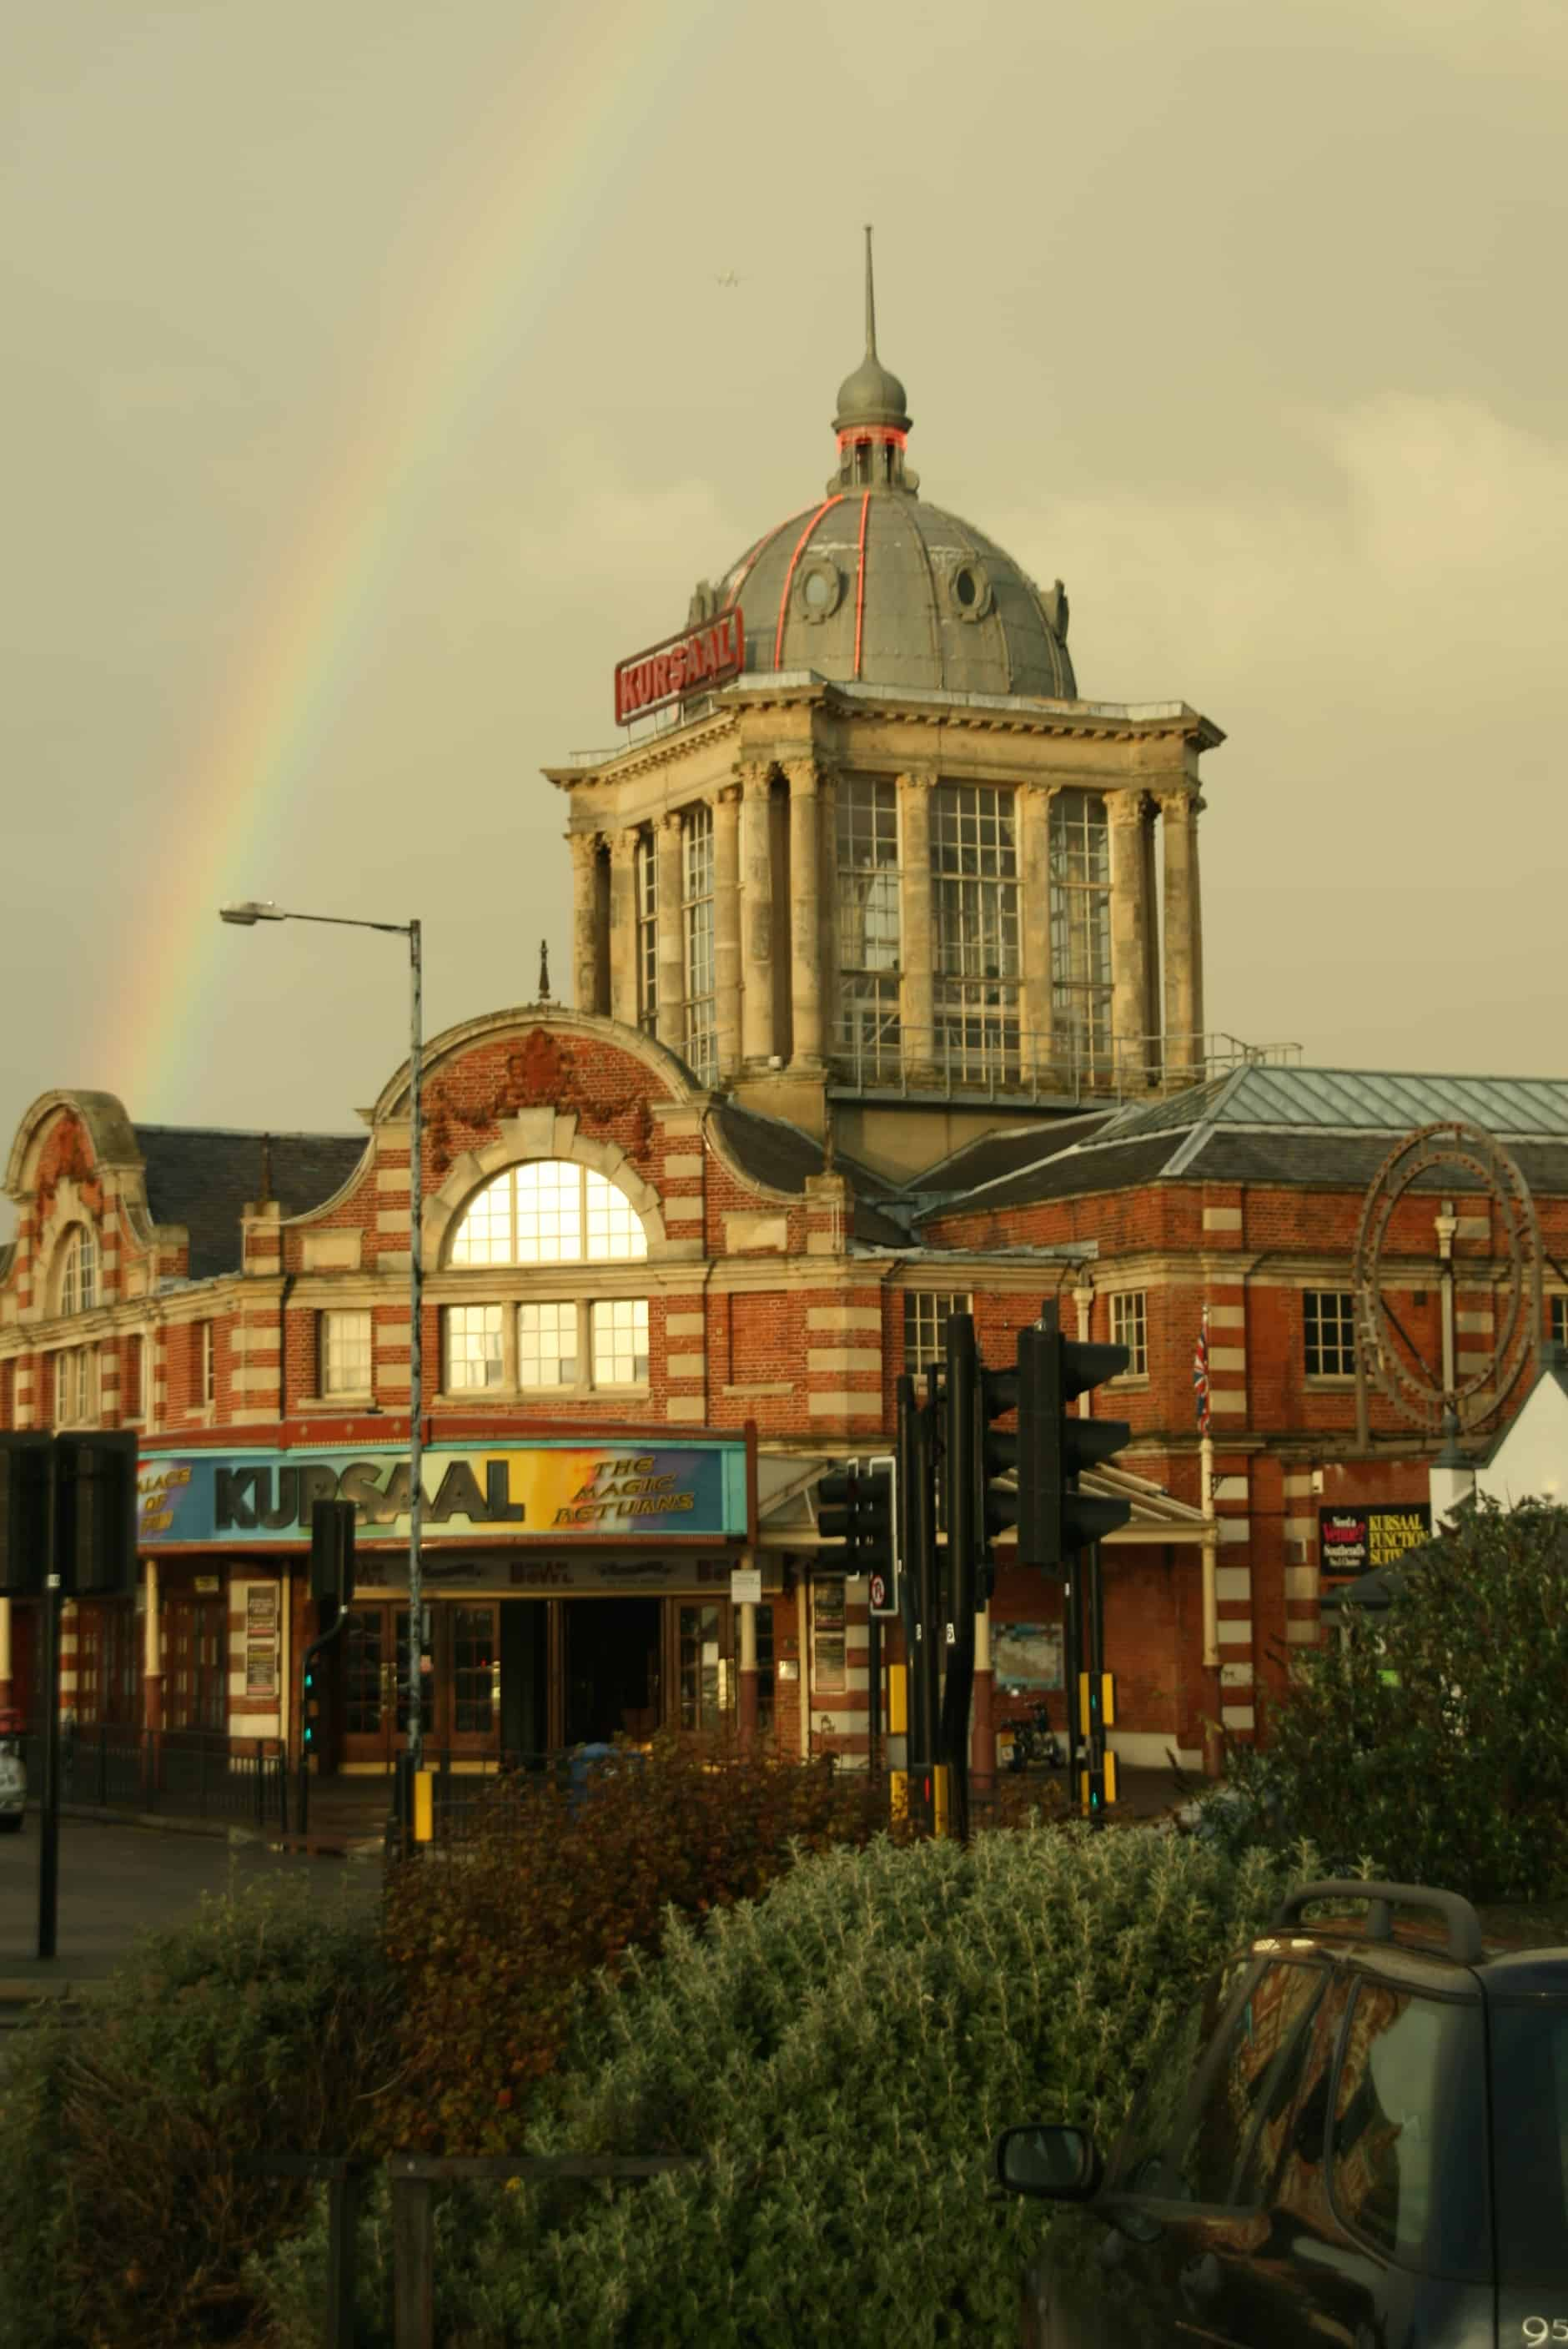 Rainbow over the Kursaal entertainment building in Southend, Essex